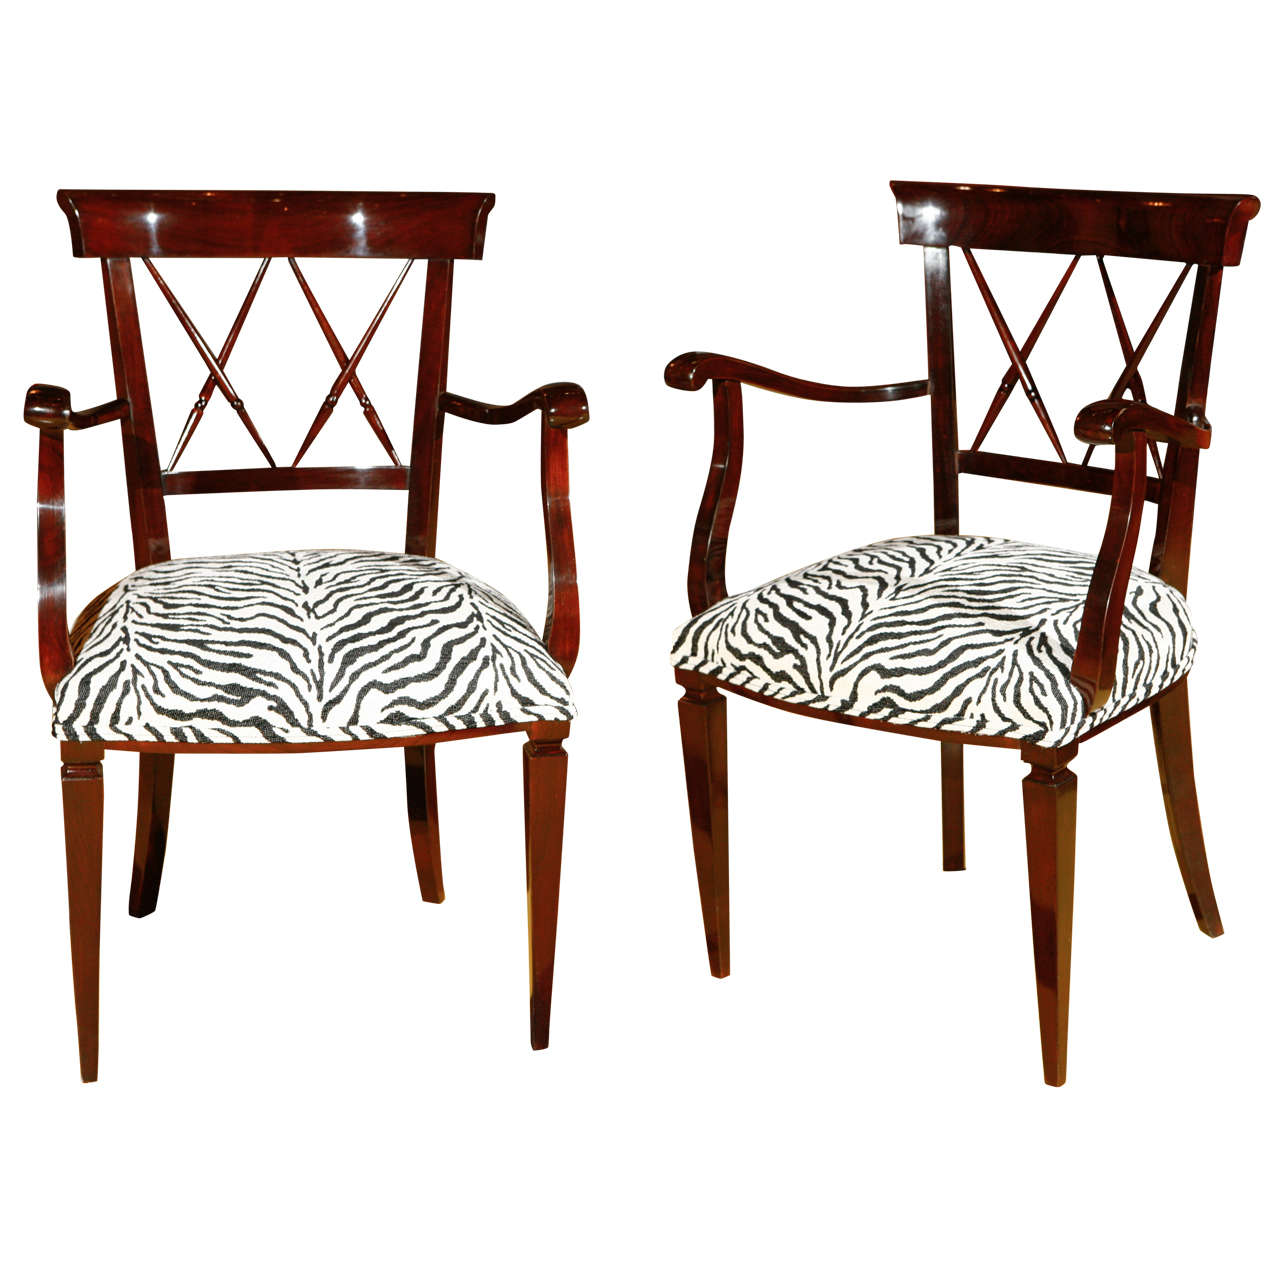 american leather swing chair stool model pair of late art deco x back chairs at 1stdibs